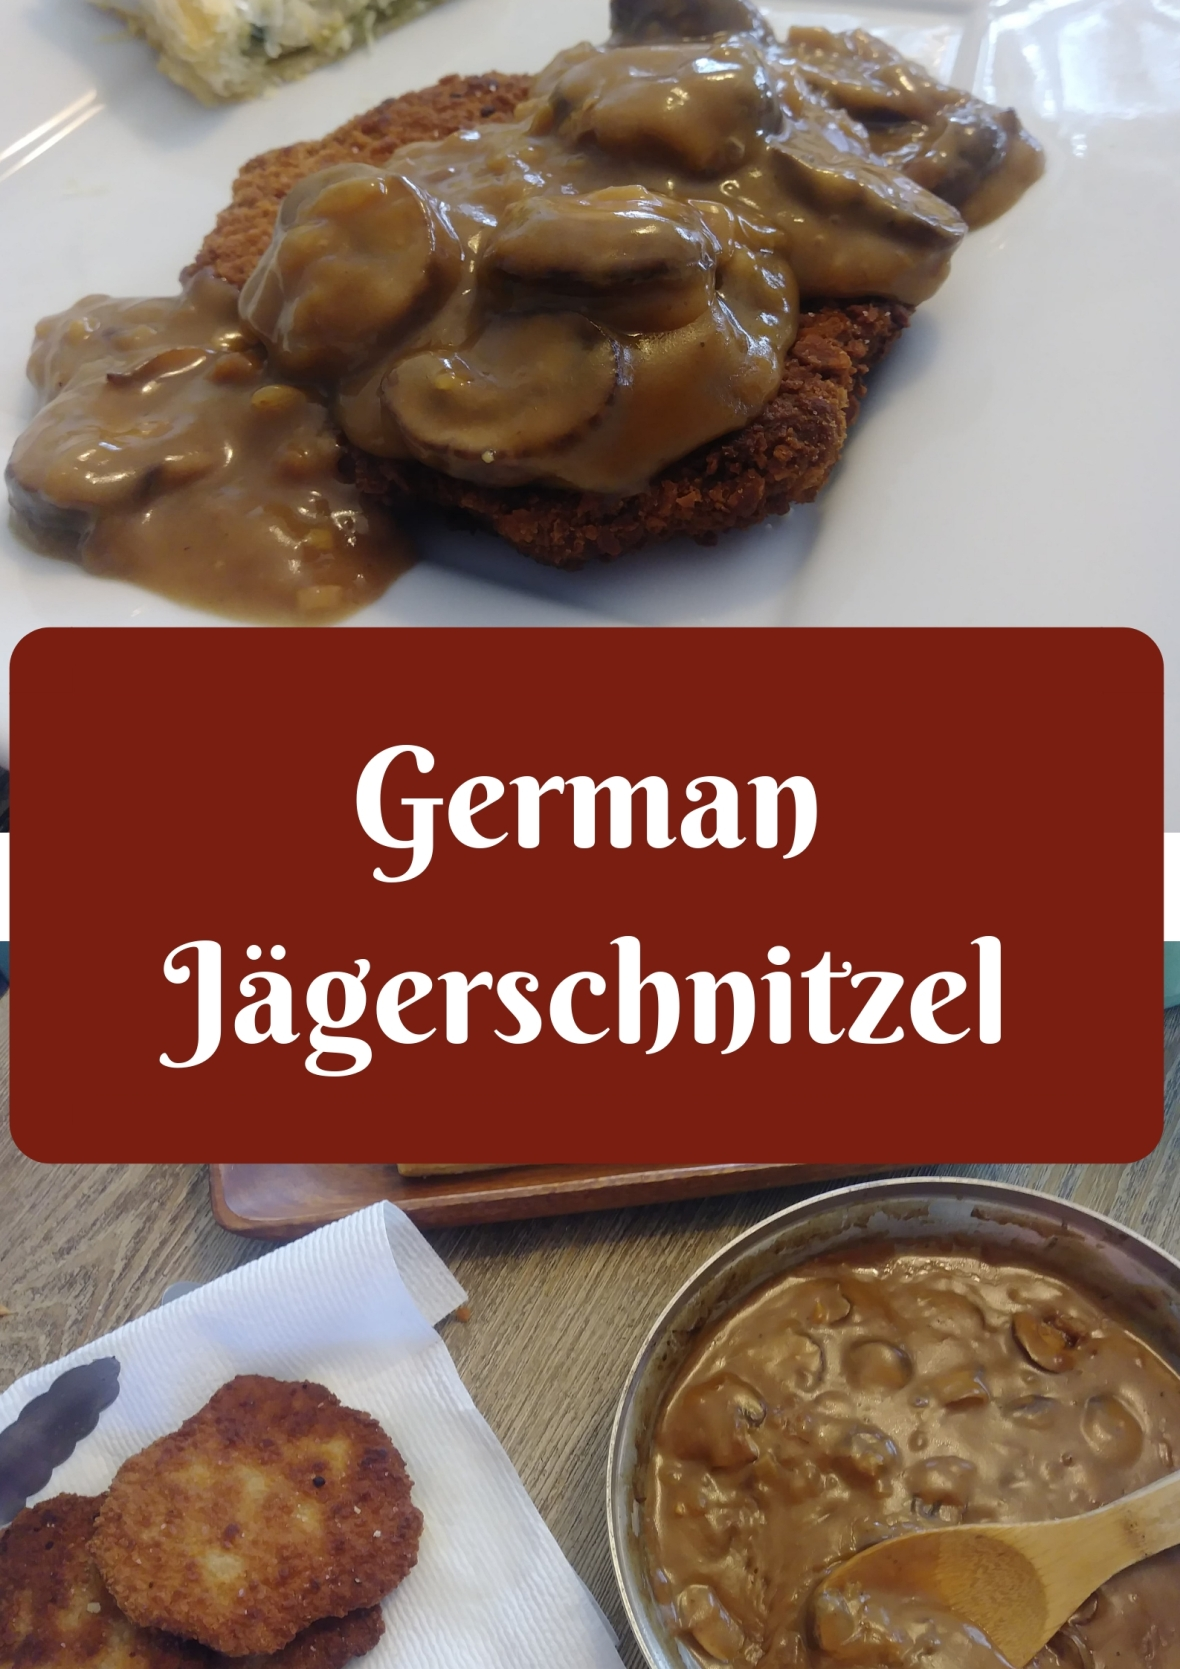 GermanJagerschnitzel (1)